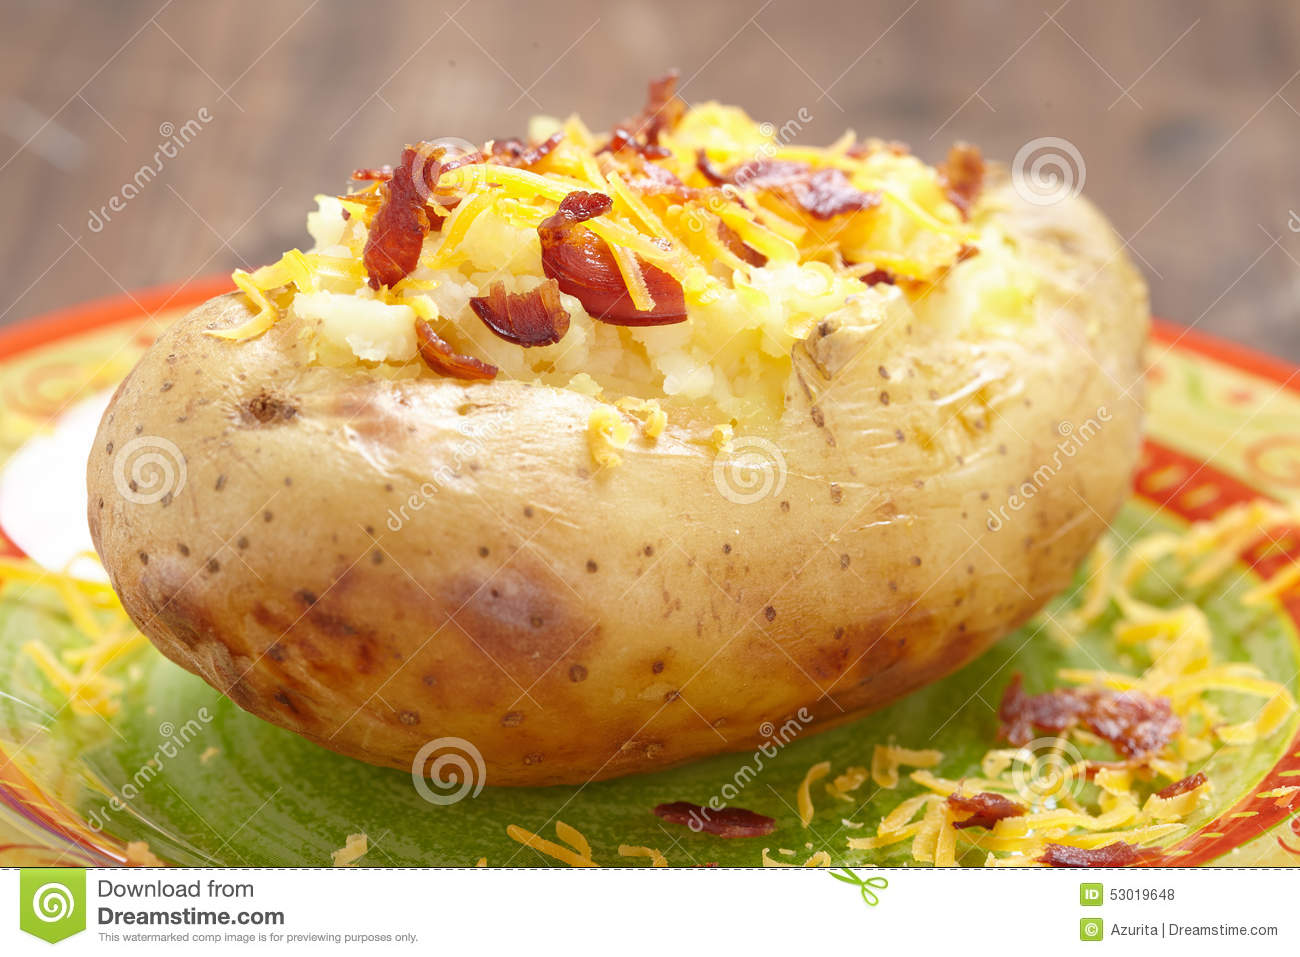 Baked Potato Stock Photo - Image: 53019648